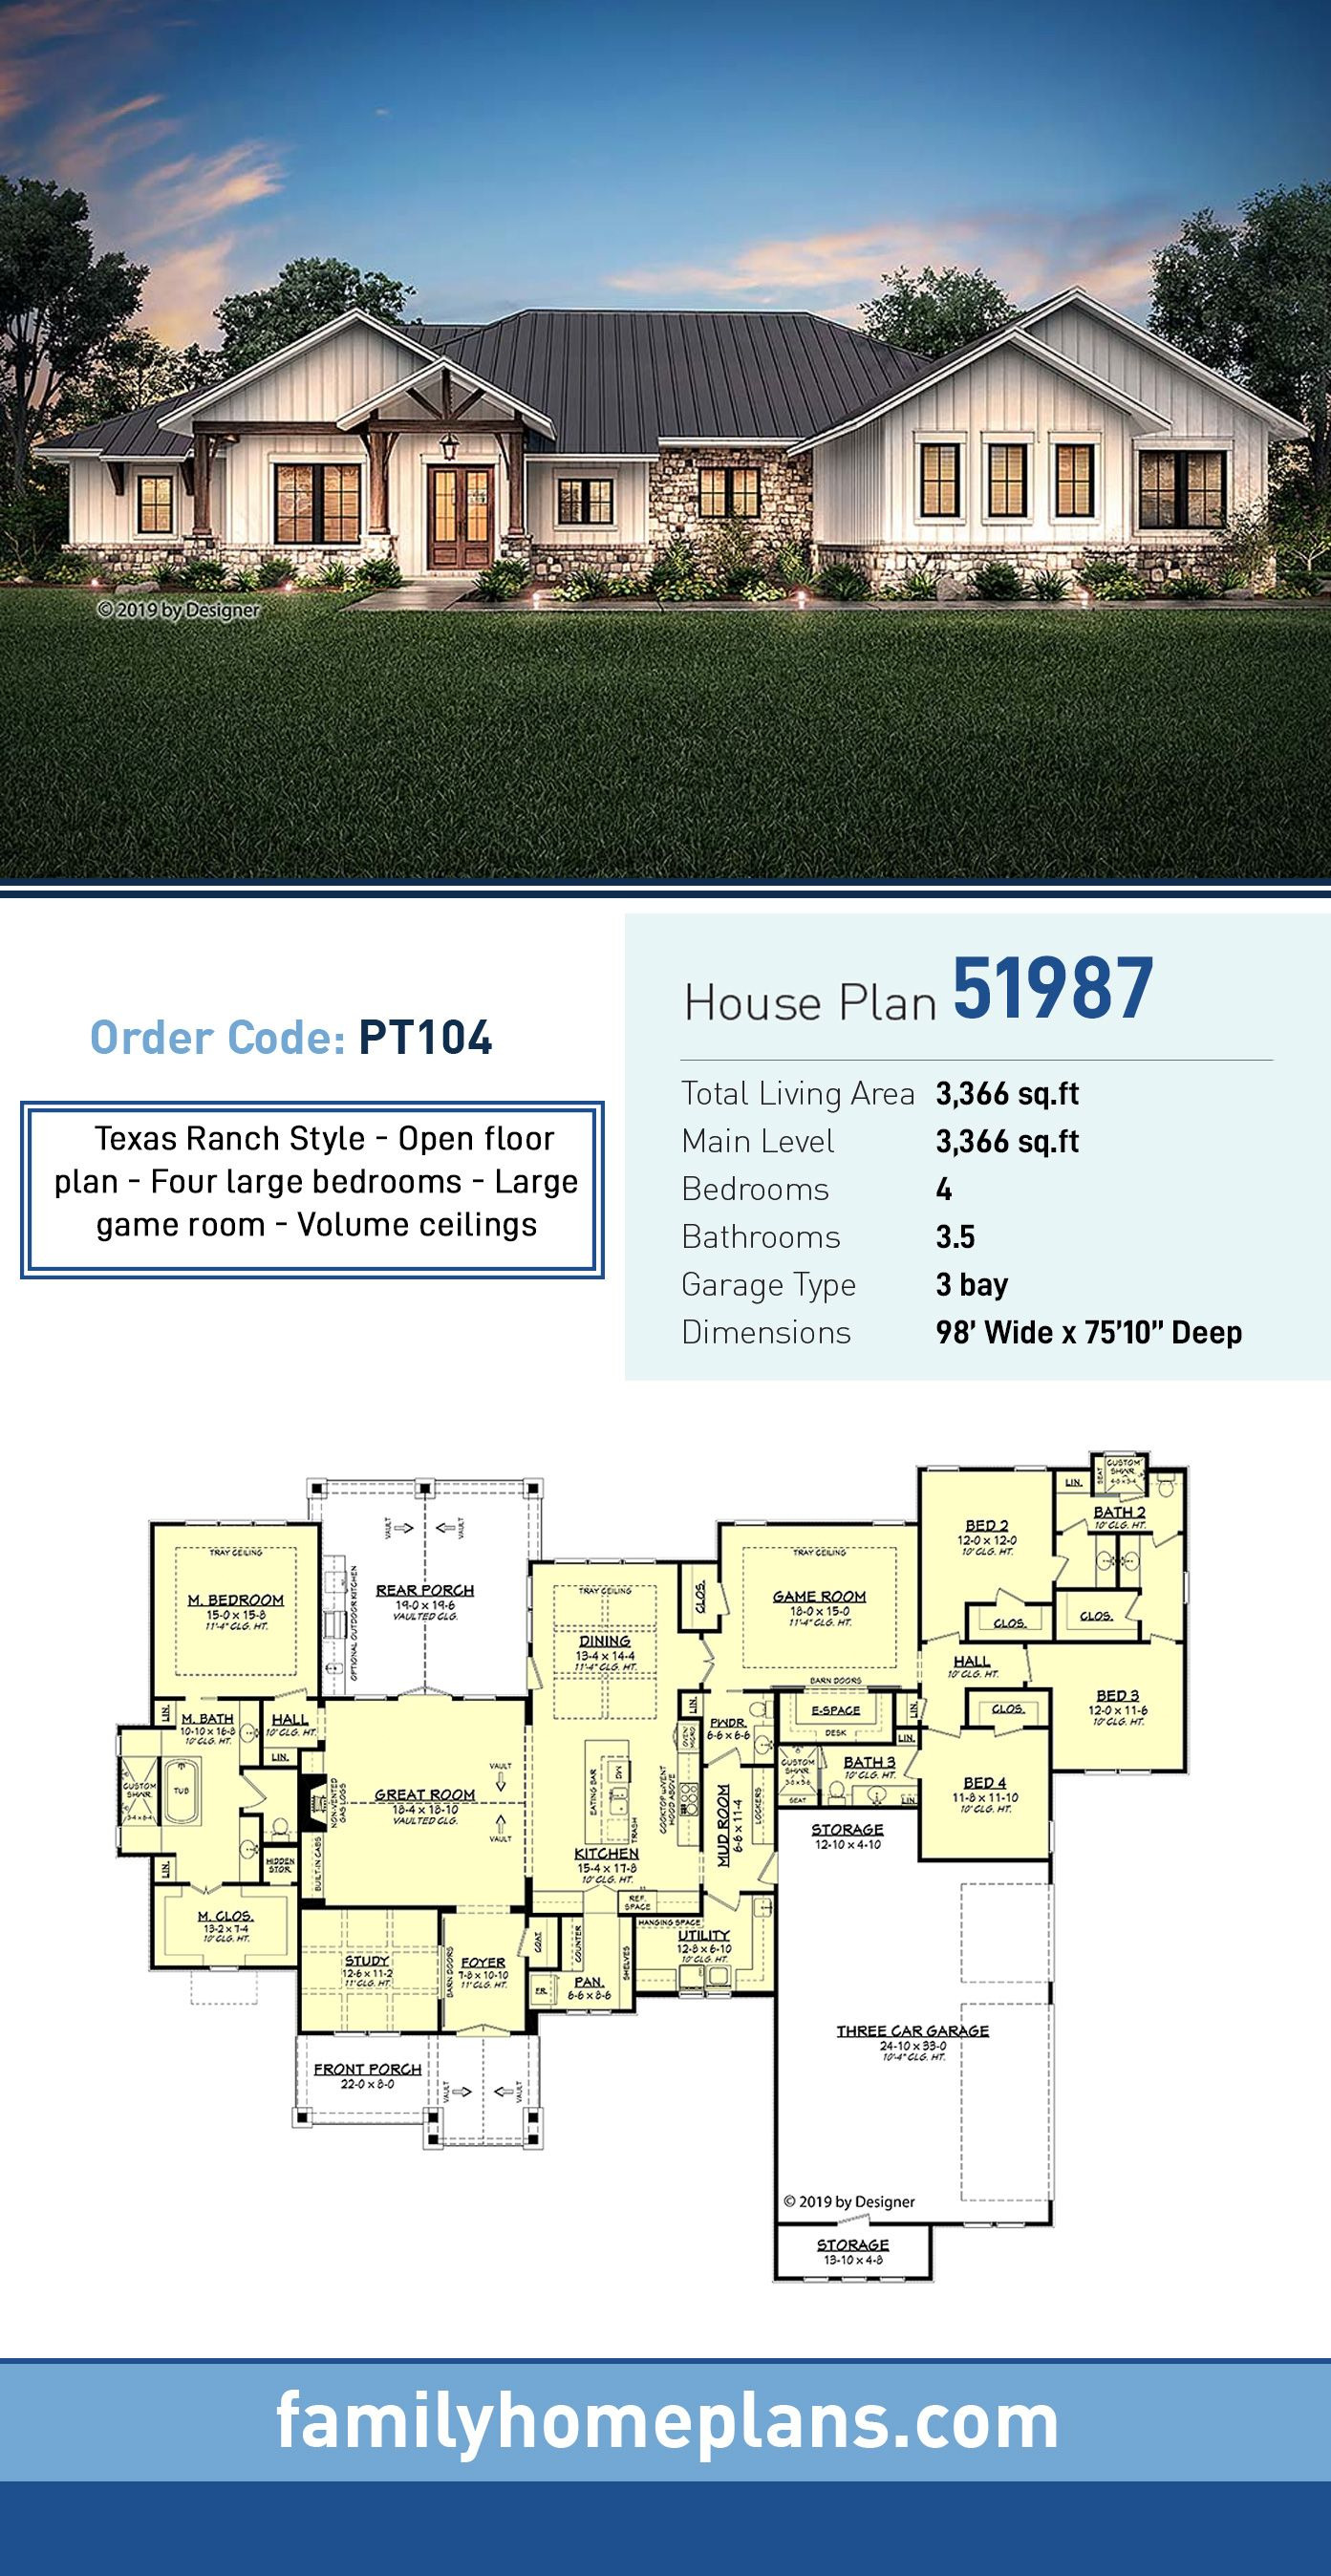 Ranch Style House Plans with Open Floor Plans Lovely Ranch Style House Plan with 4 Bed 4 Bath 3 Car